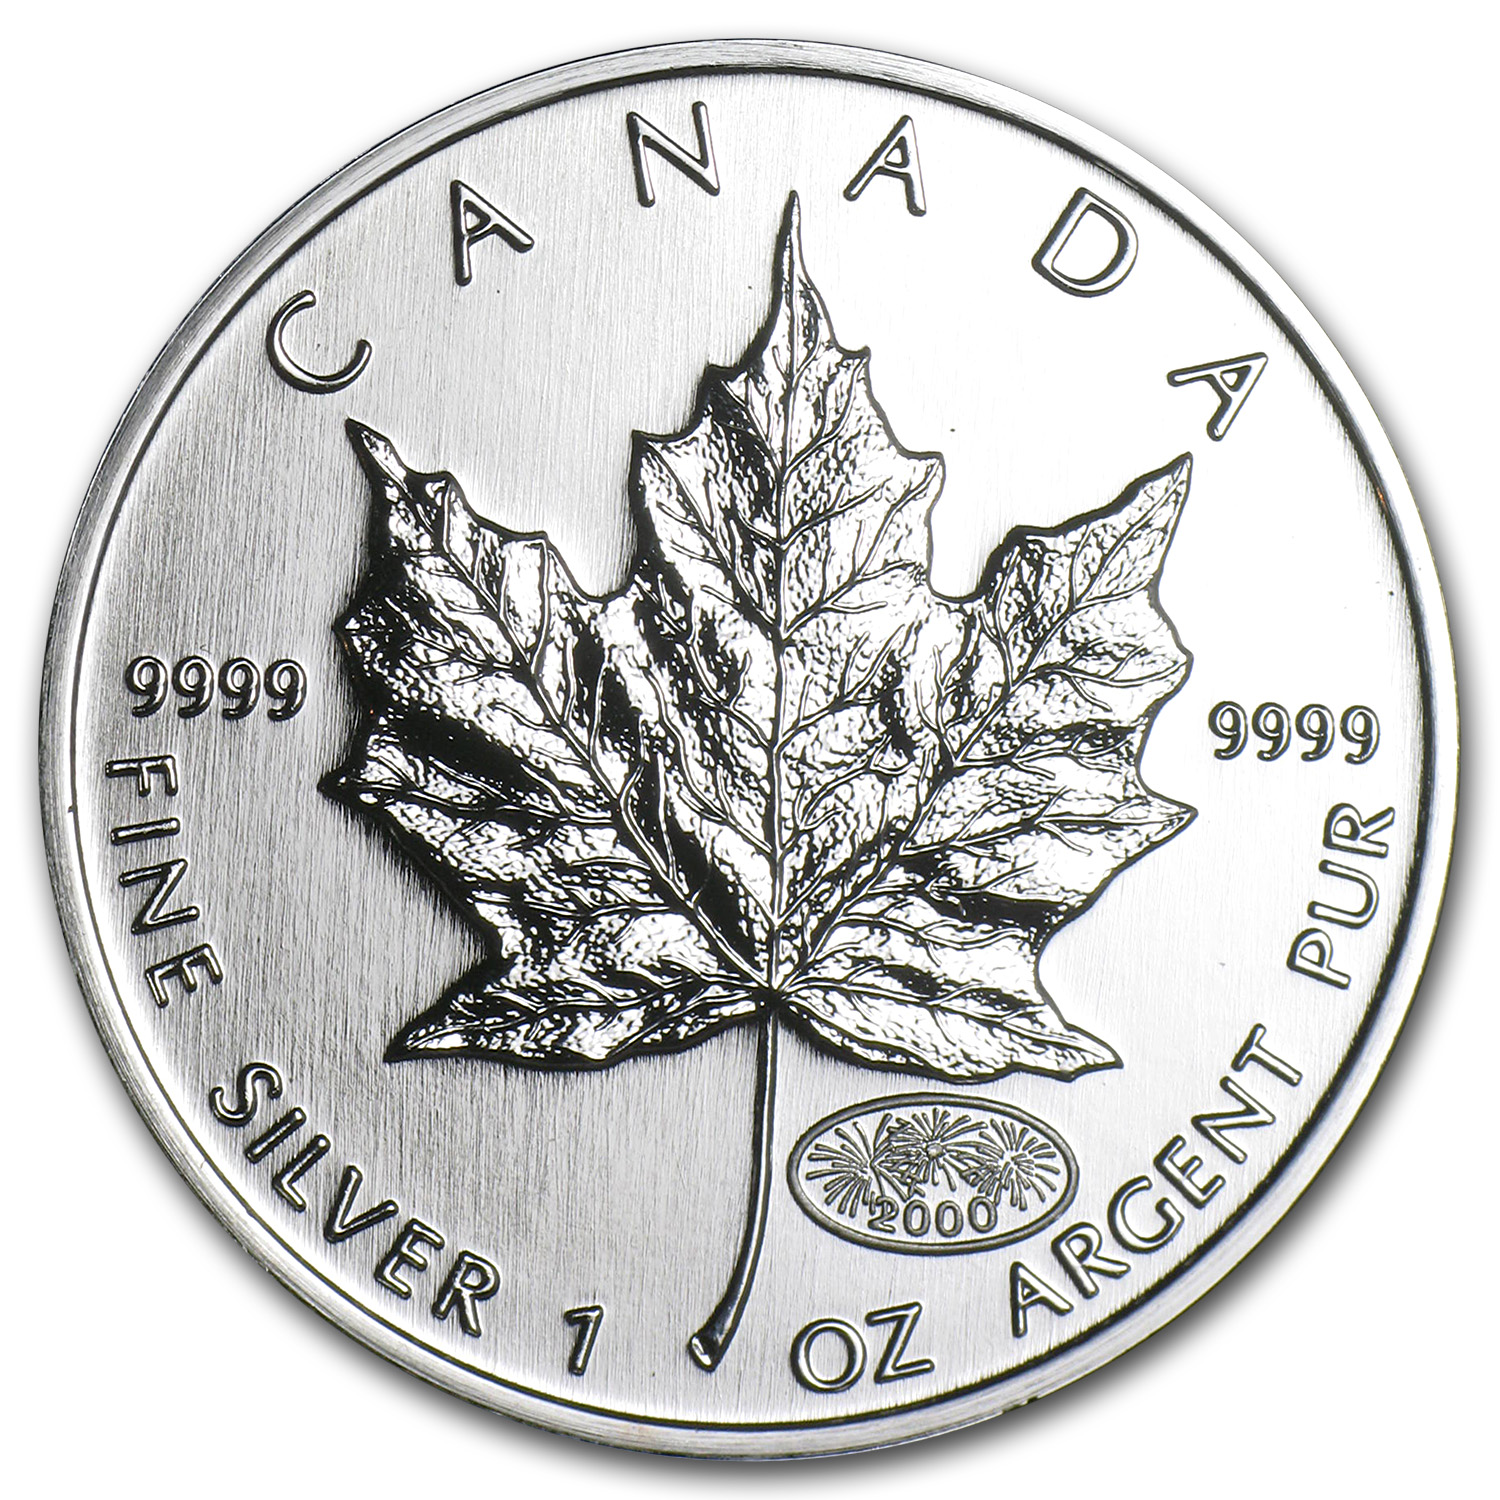 2000 Canada 1 oz Silver Maple Leaf BU